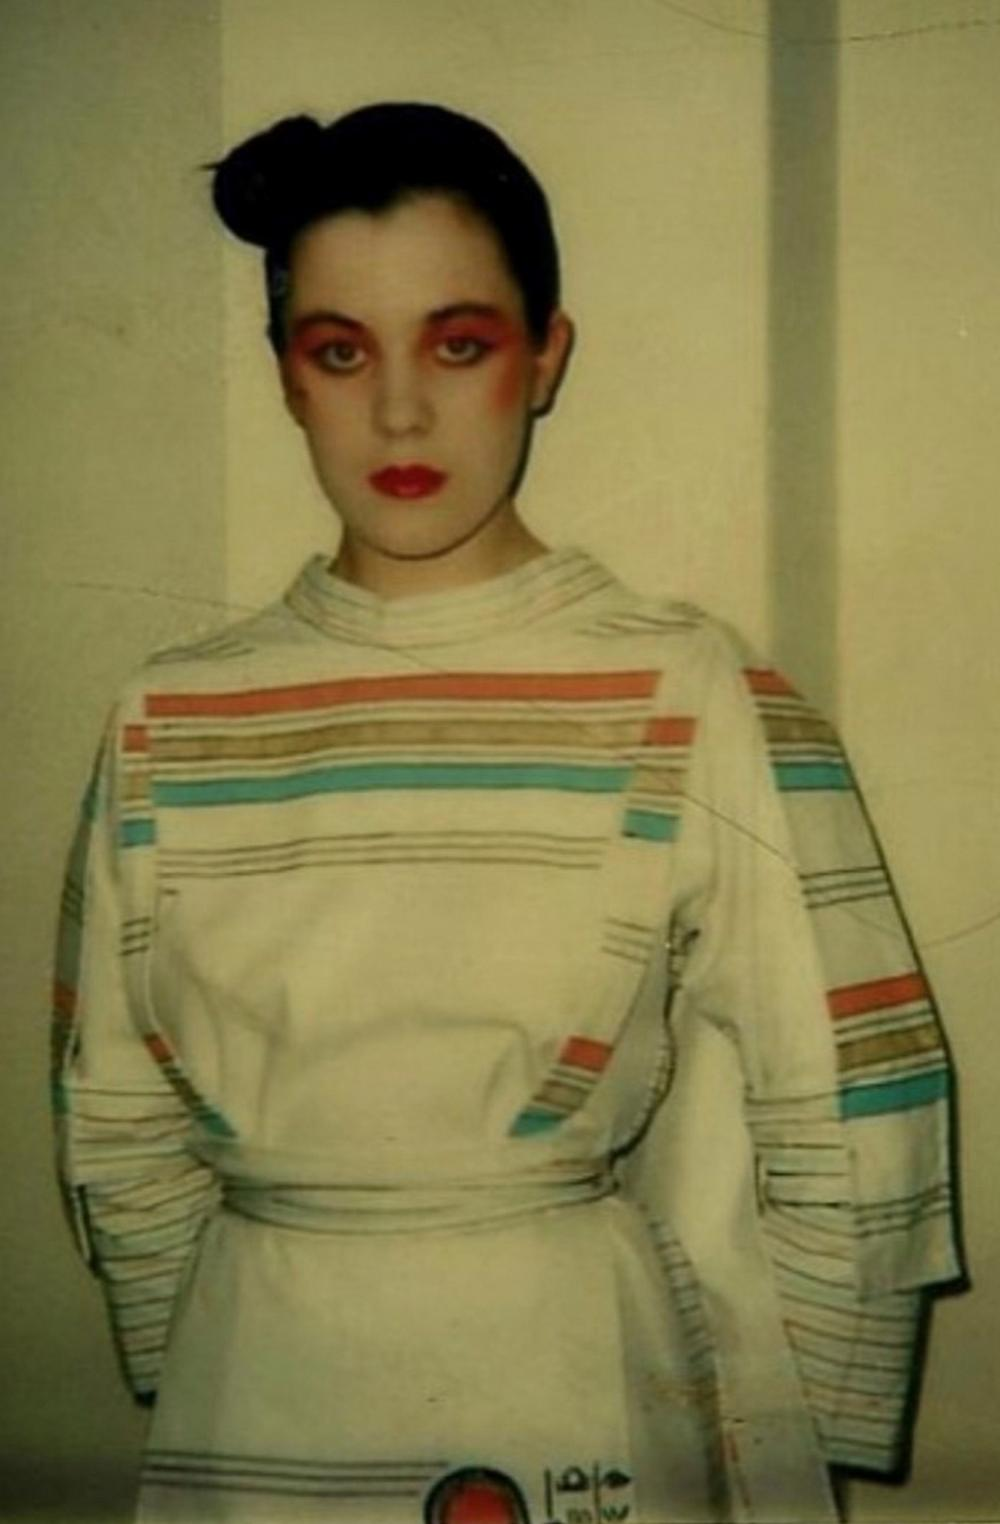 A group of clothing designed by emerging St Martins students in the early 1980s,